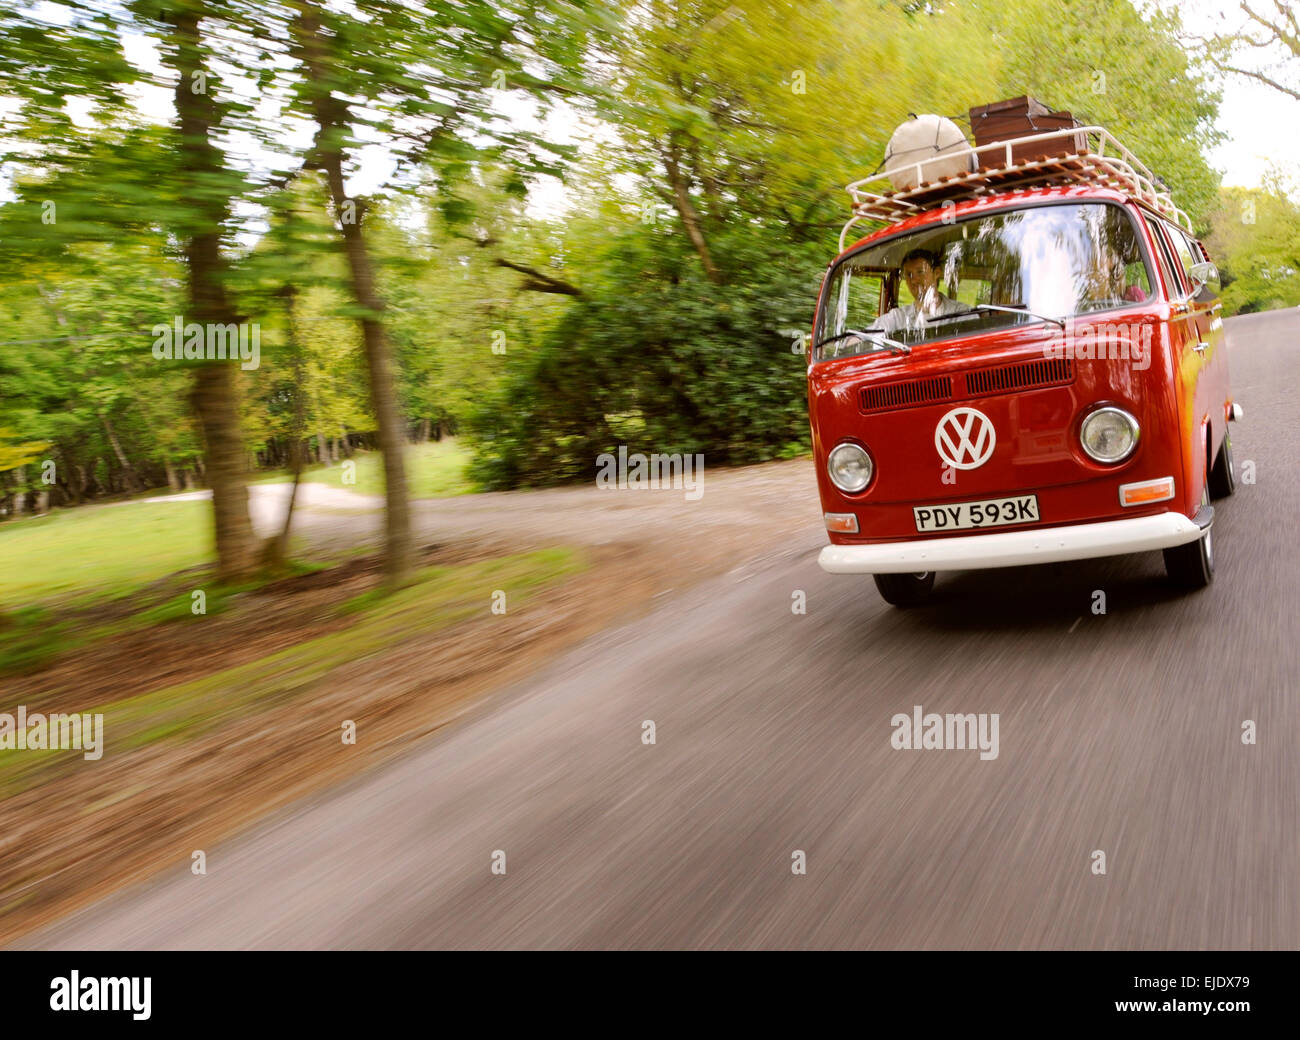 A red Volkswagen Camper bus on country road of East Sussex UK. - Stock Image